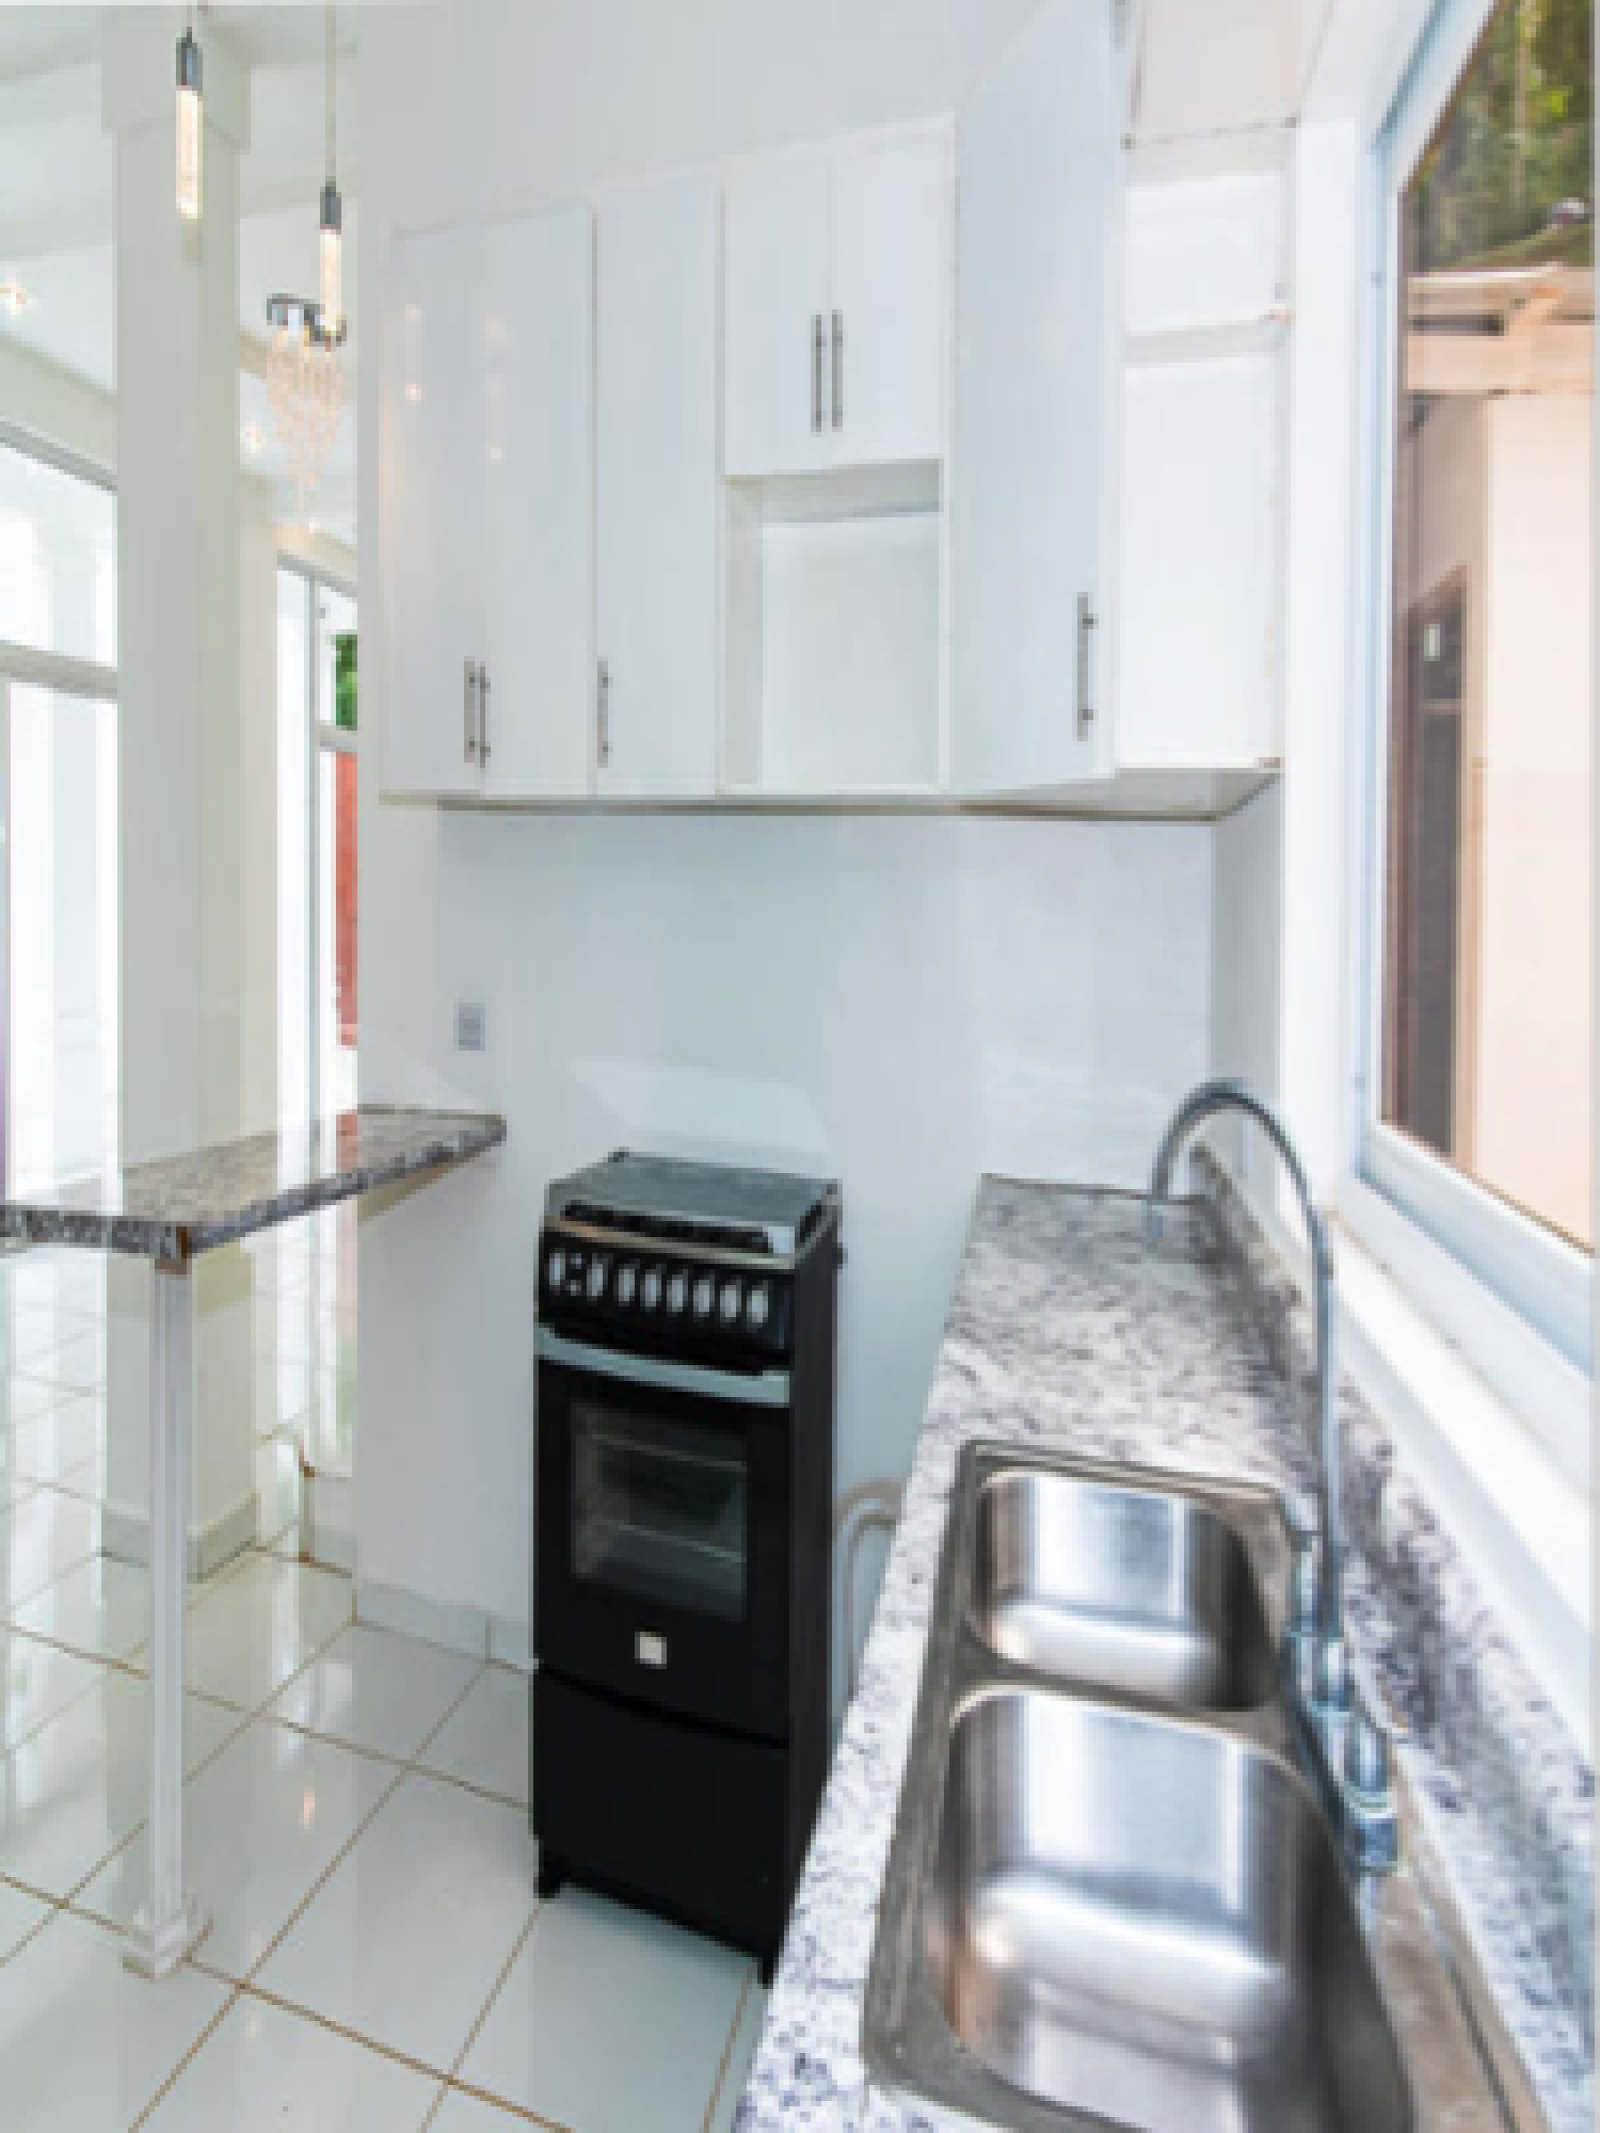 Countertops and oven